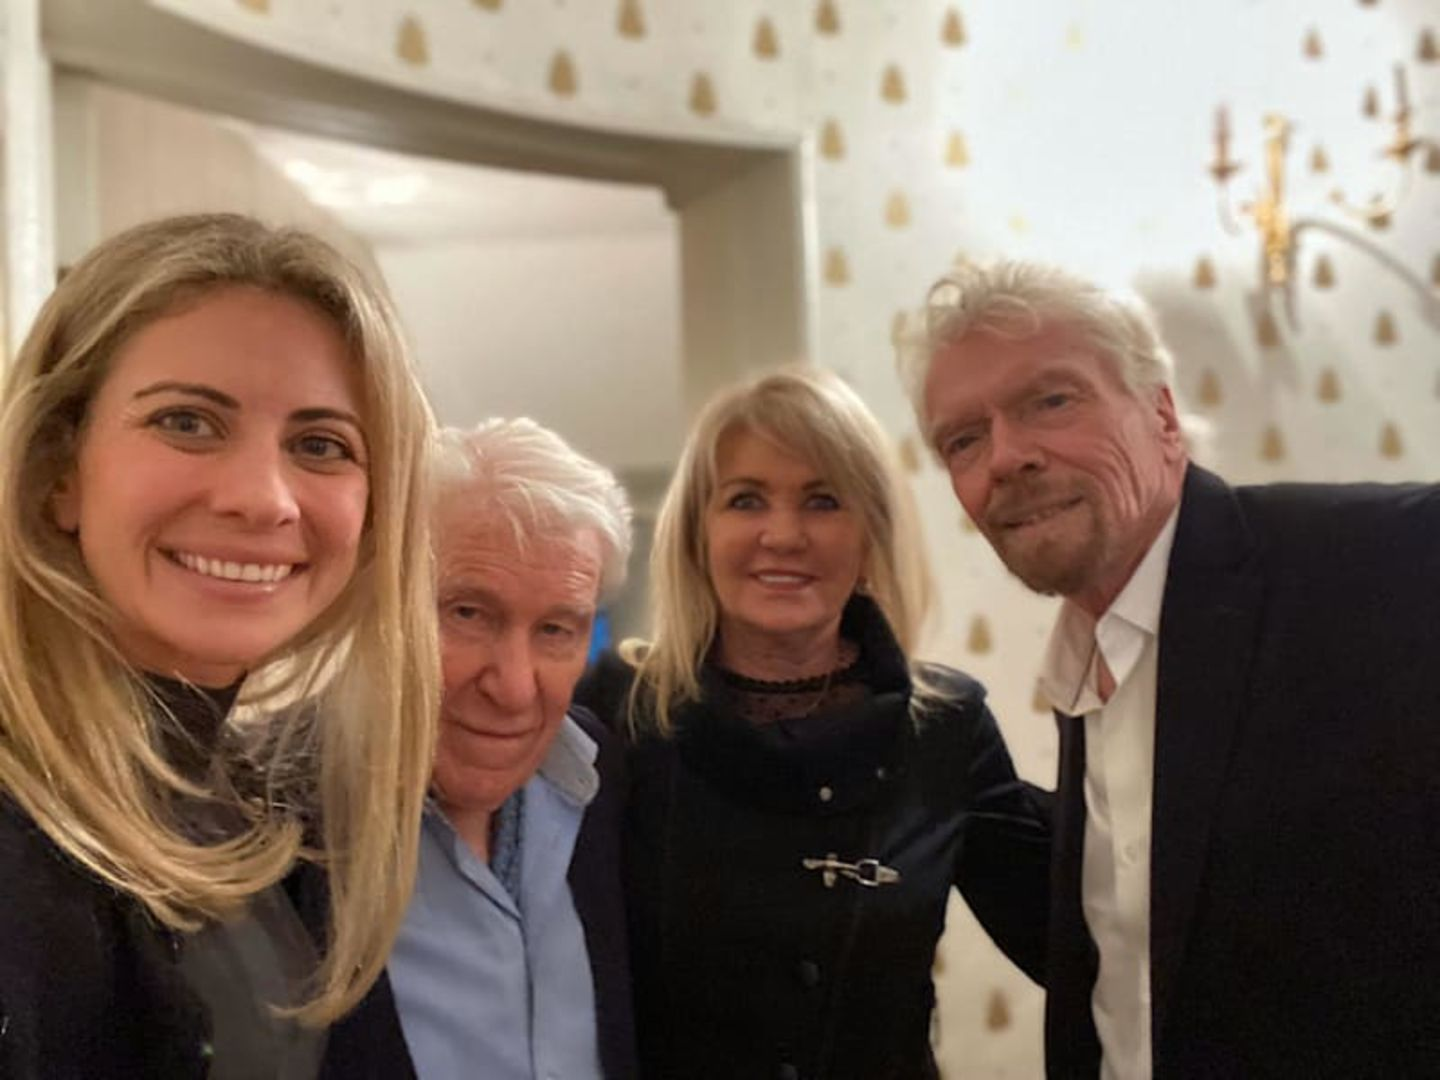 Richard, Joan and Holly Branson with Dr Peter Emerson